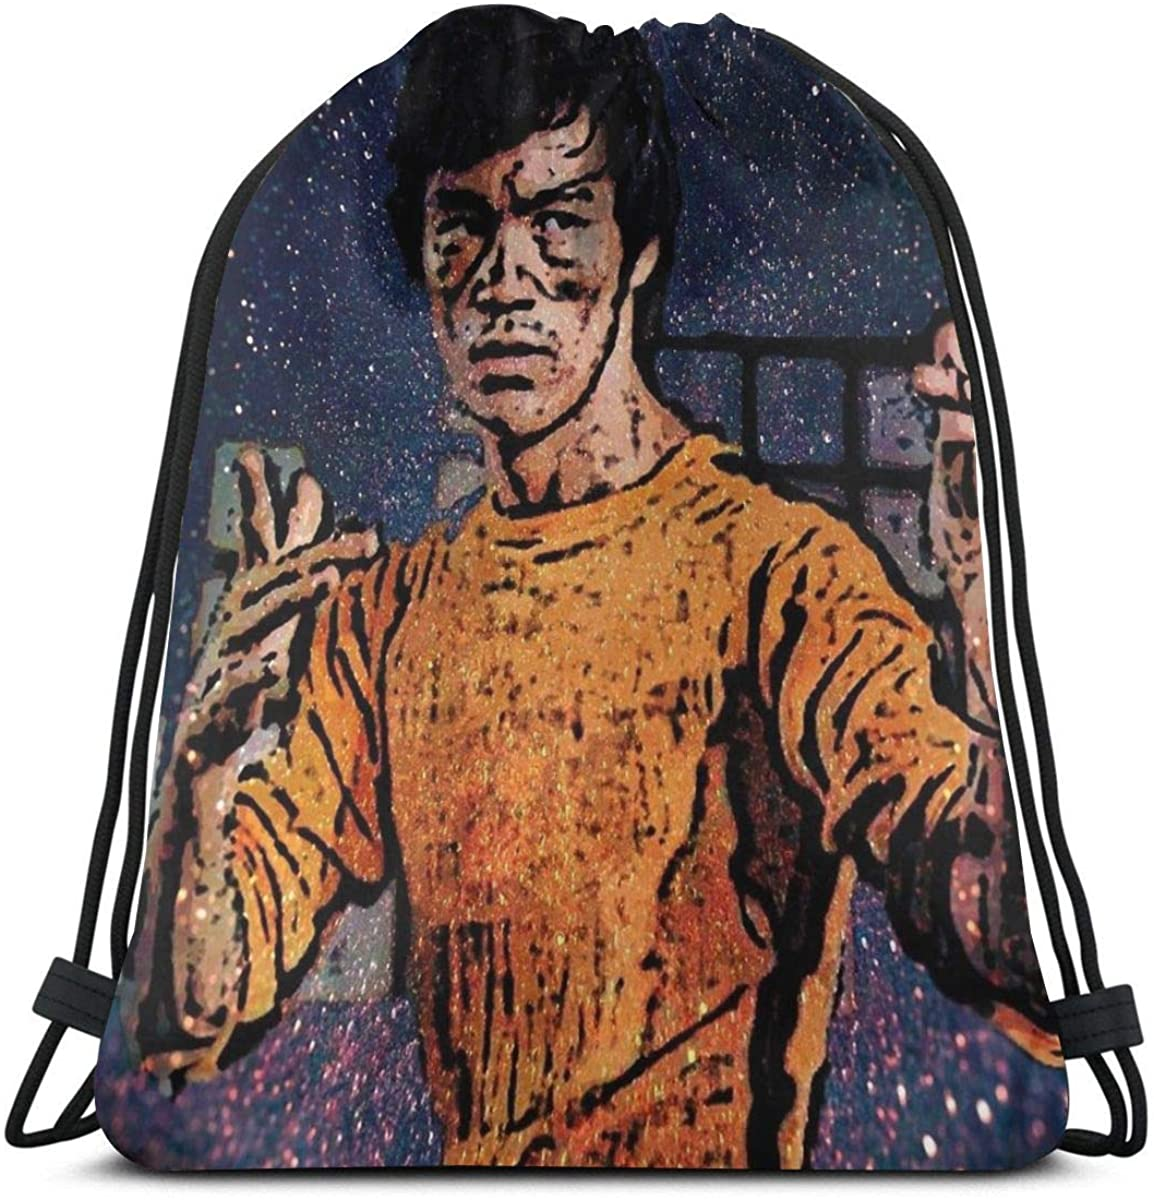 Bruce Lee Drawstring Bag Sports Fitness Bag Travel Bag Gift Bag